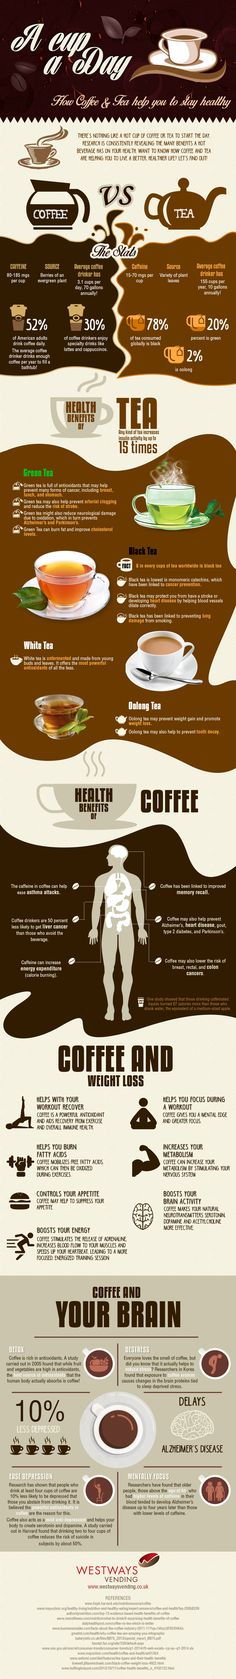 #Coffee vs Tea.... Which is better for you? Enjoy a cup and read more about your favourite #hotbeverage